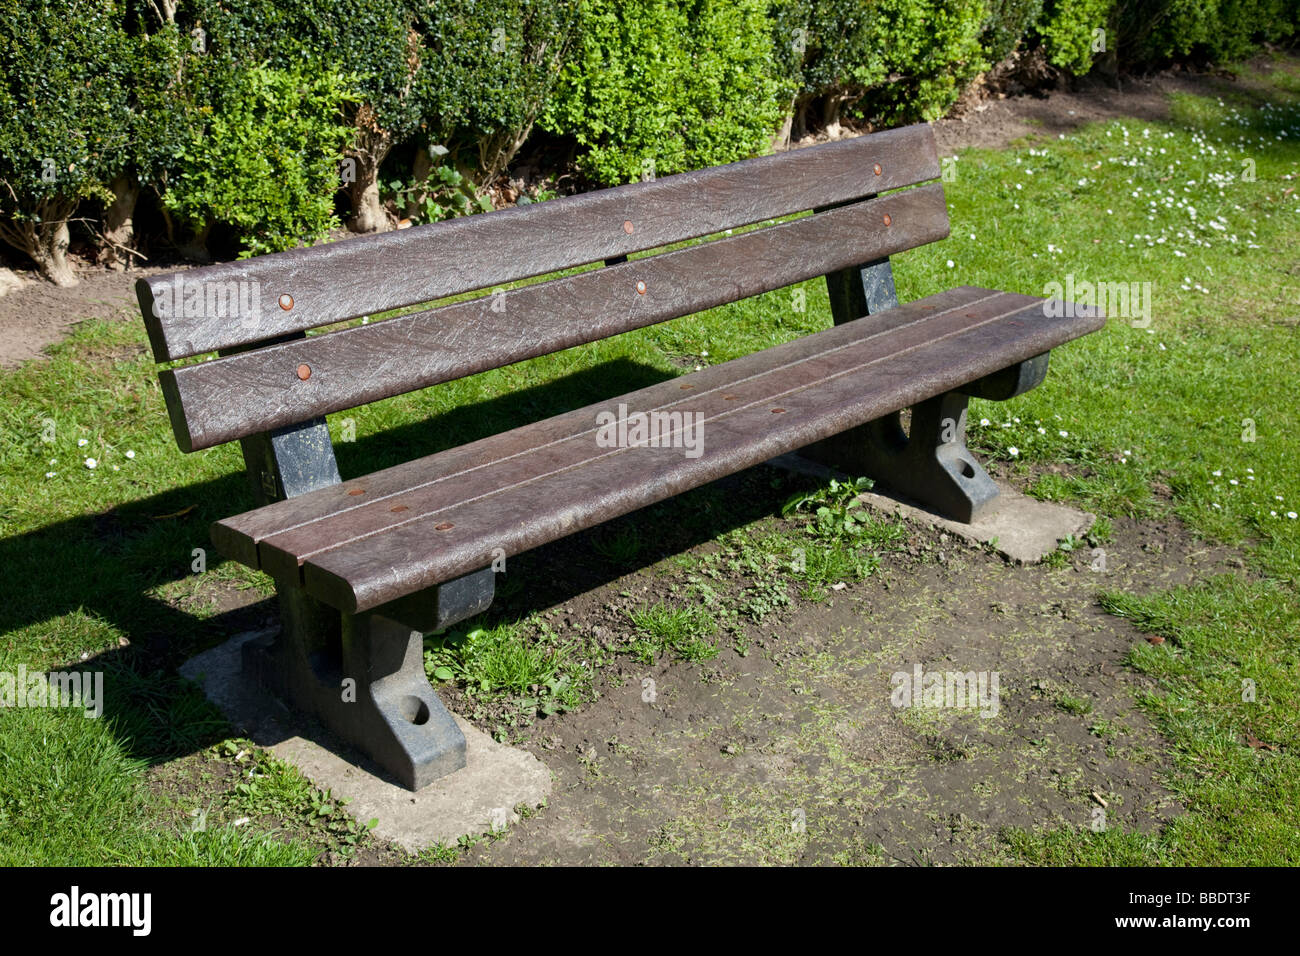 Marvelous C8 Alamy Com Comp Bbdt3F Park Bench Seat Made Of B Ncnpc Chair Design For Home Ncnpcorg